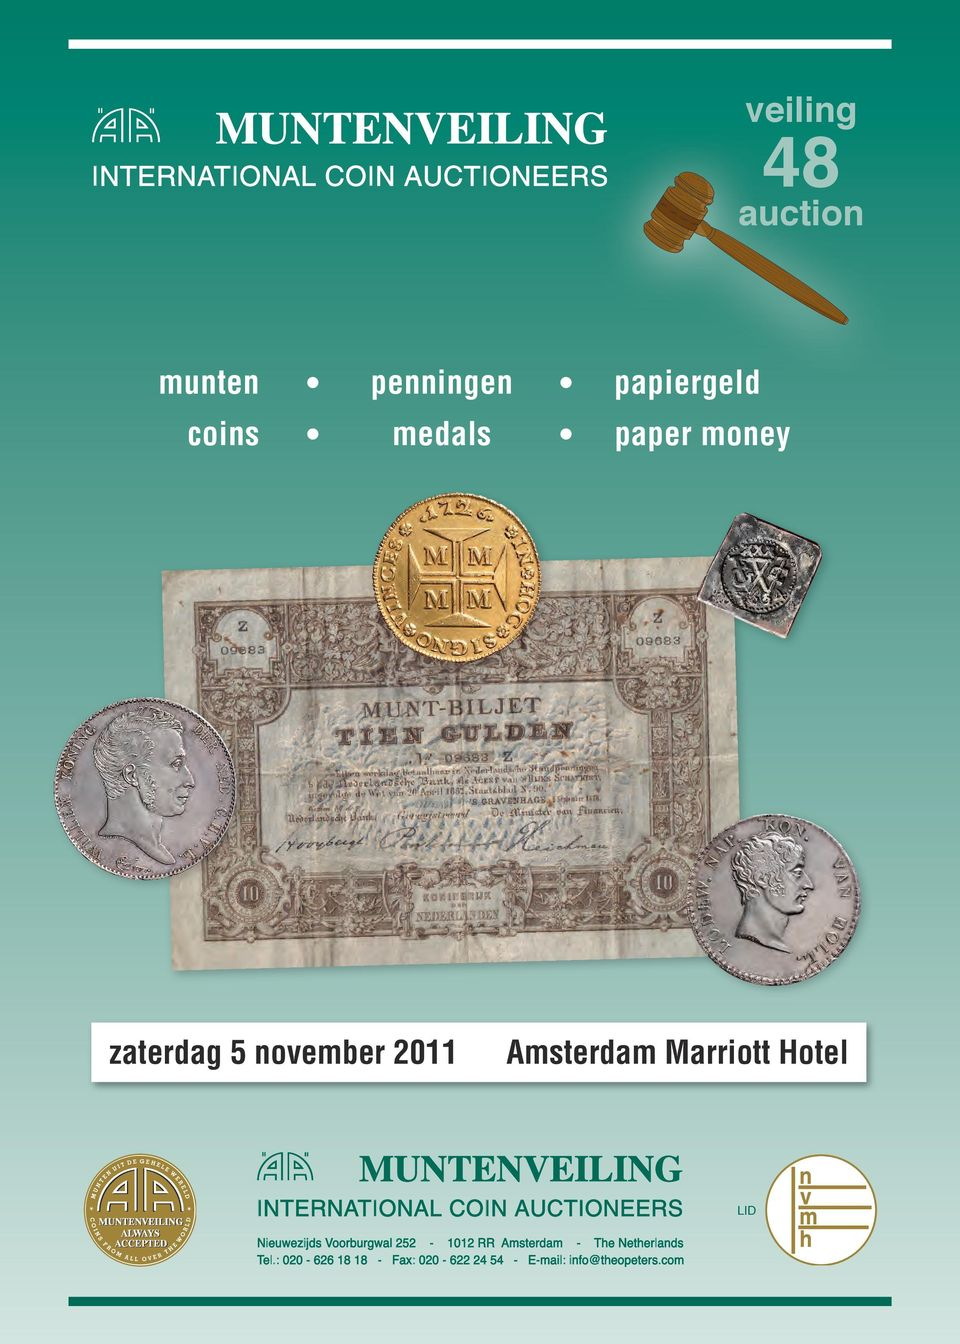 medals paper money zaterdag 5